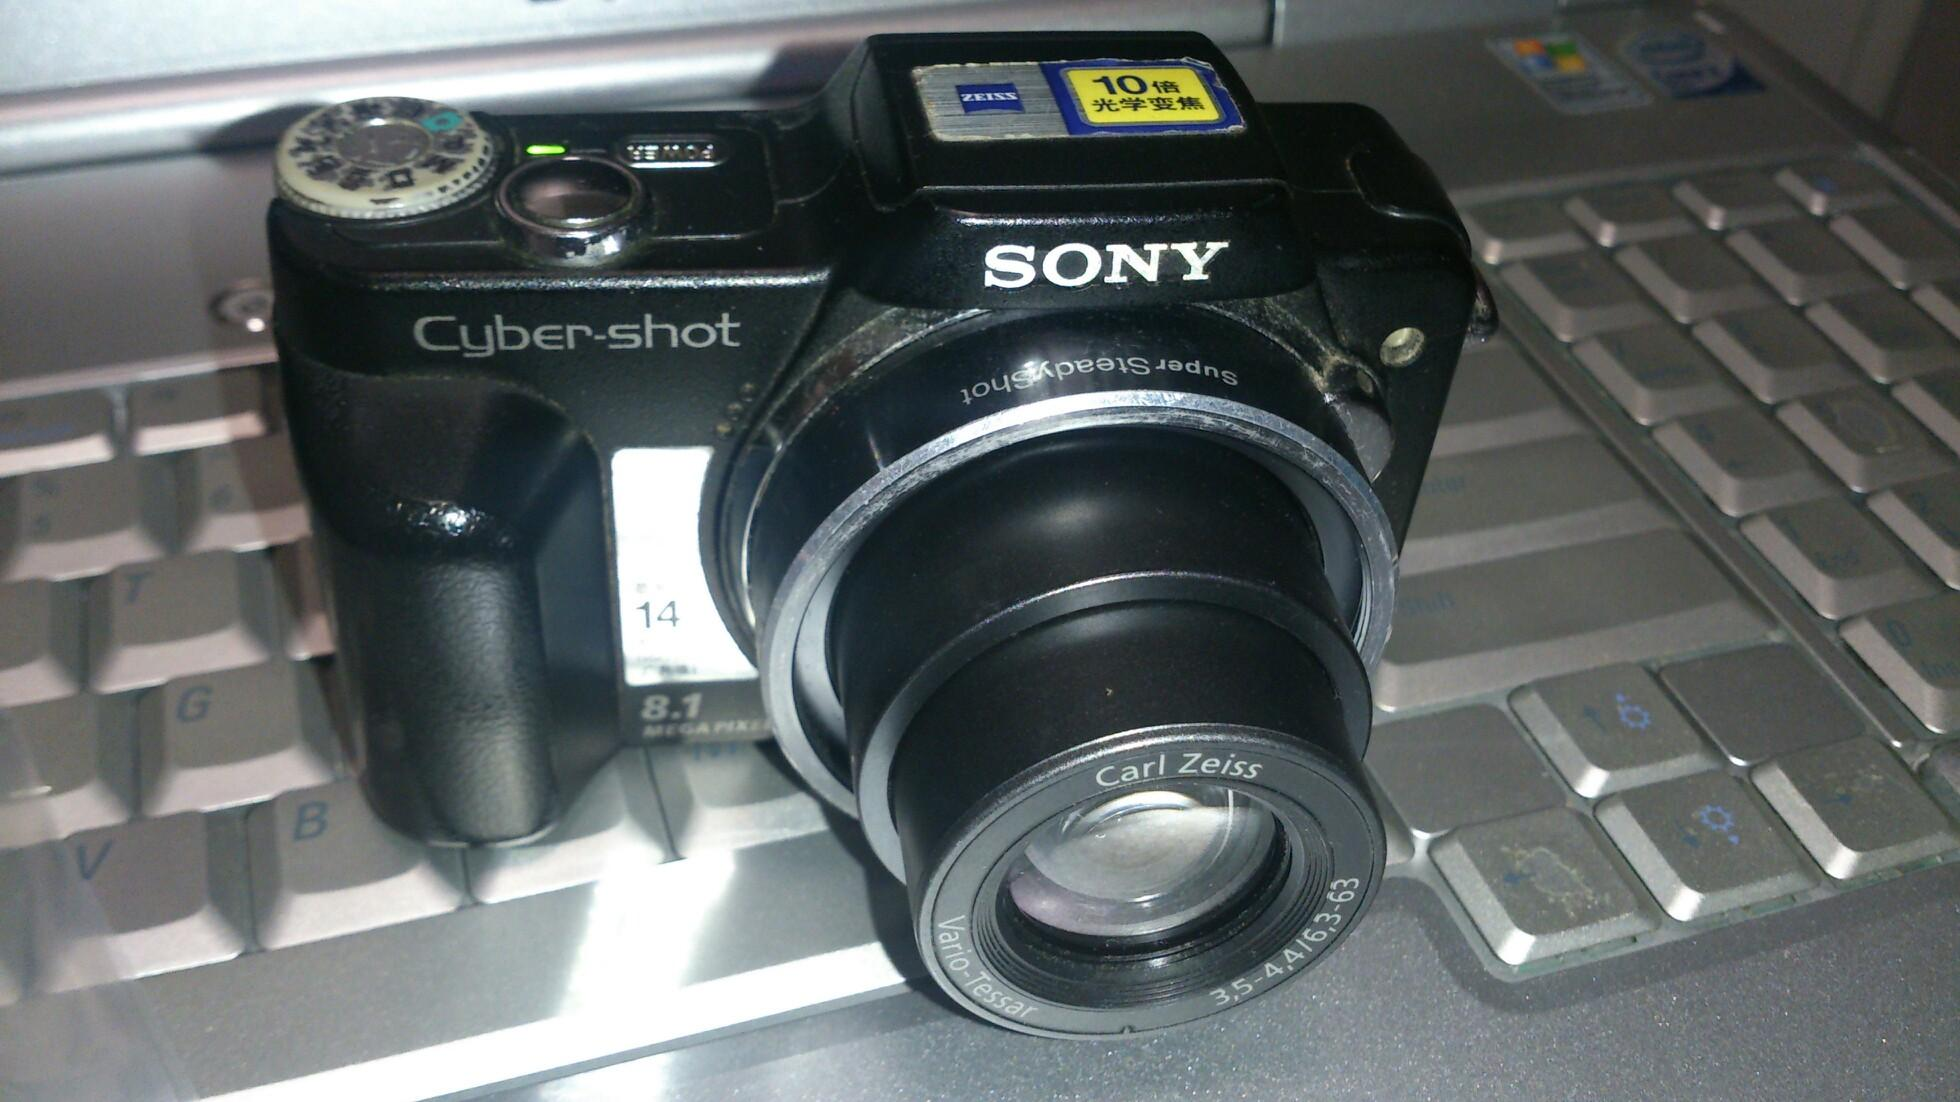 Sony camera H2, 10x optical zoom, zeiss lens.